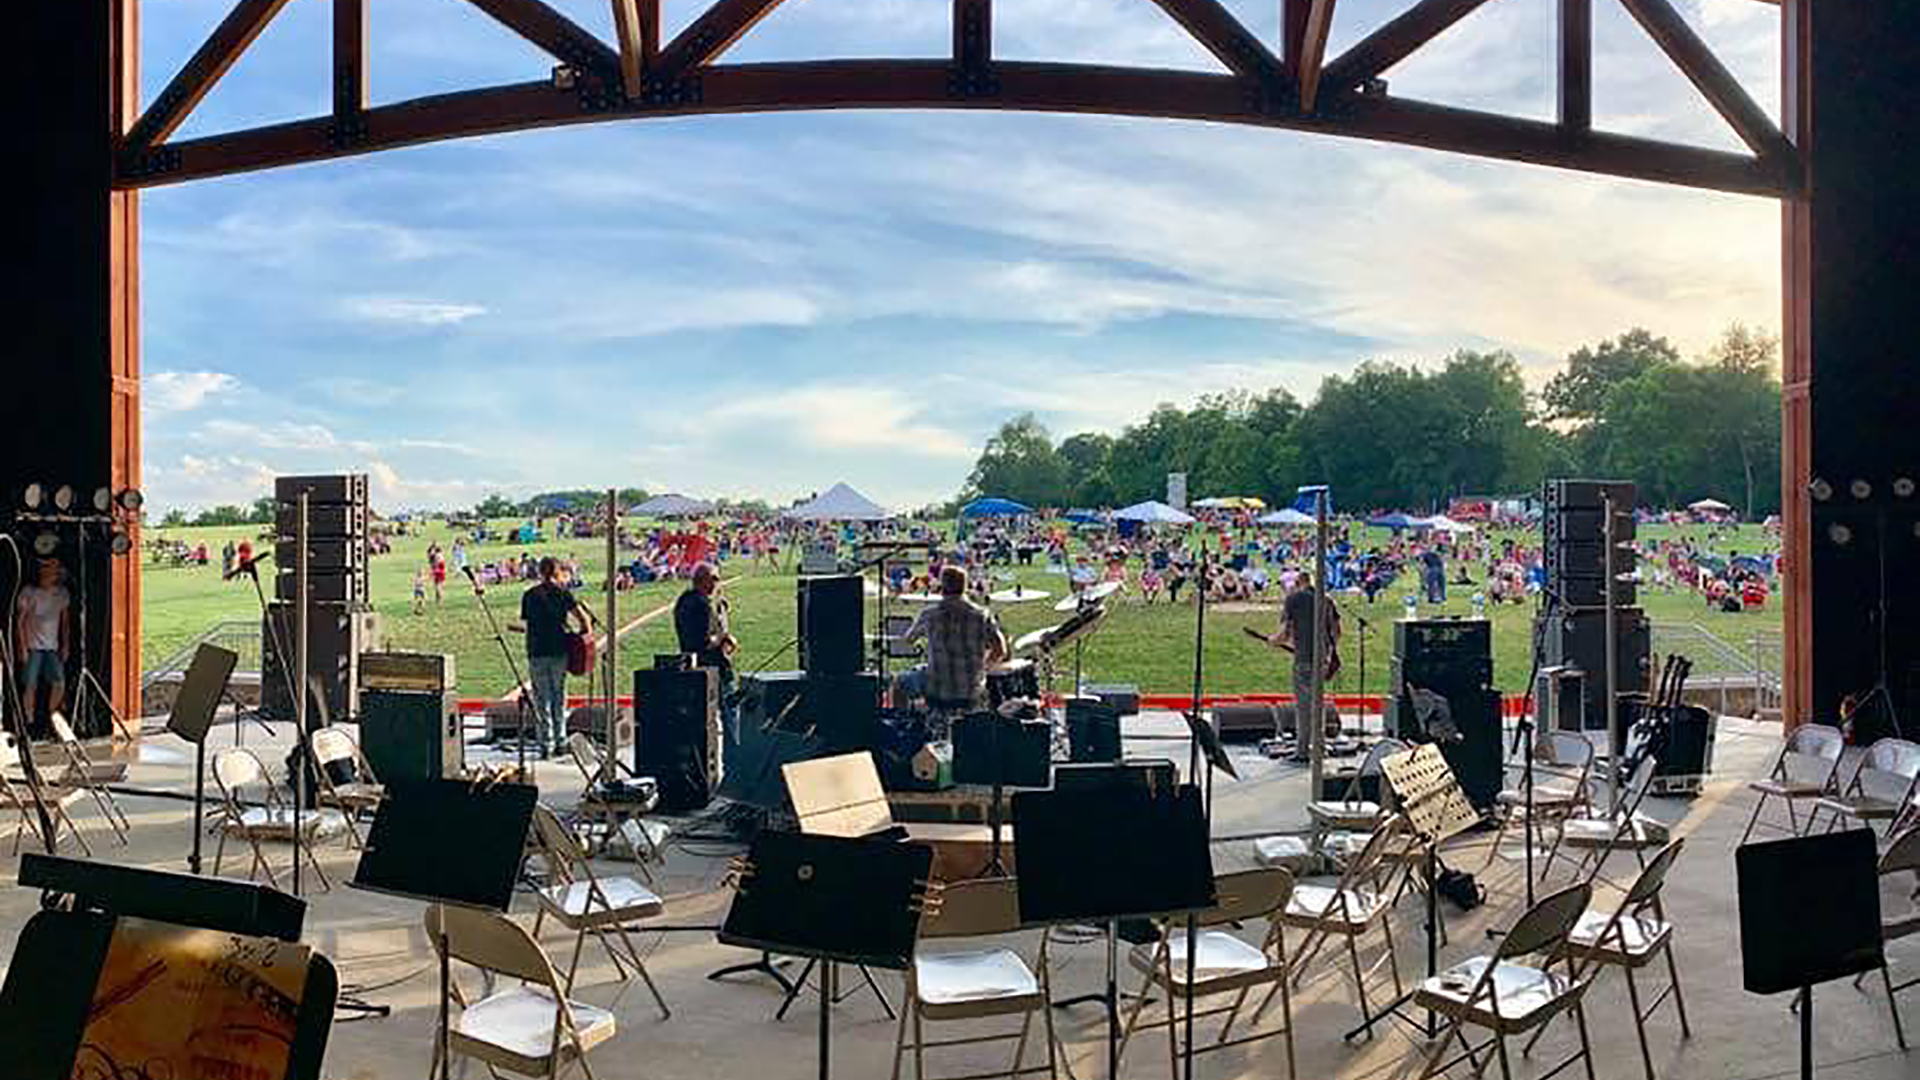 The view from the stage at the AMP at Sam Michaels Park